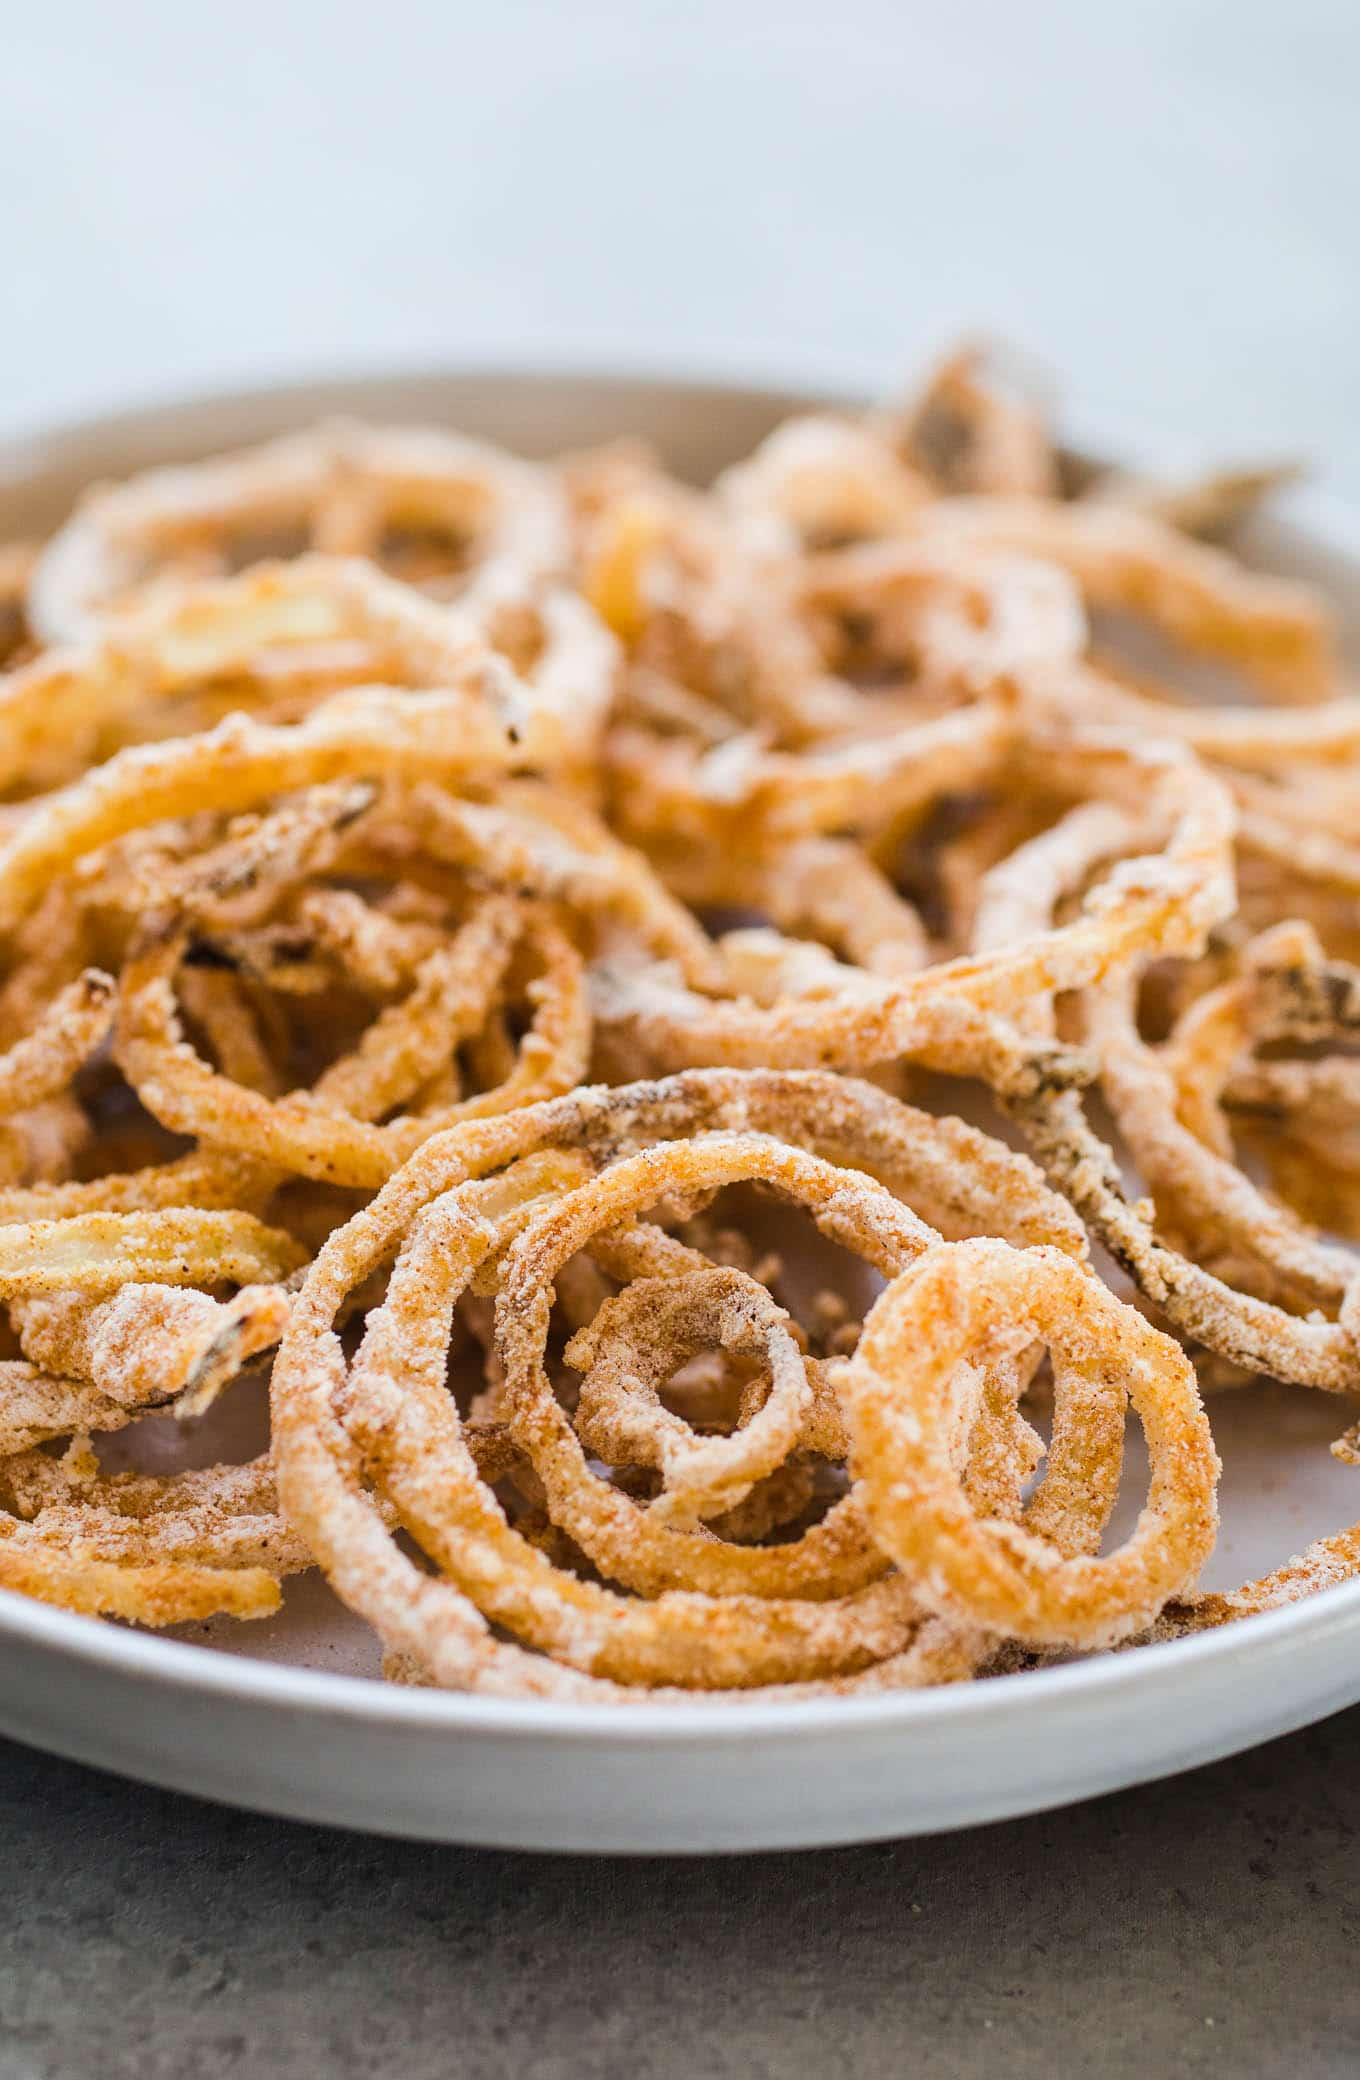 A Gluten-Free Onion Strings recipe that is baked, not fried. Made with white rice flour, dairy-free buttermilk, and spices, these won't last long!